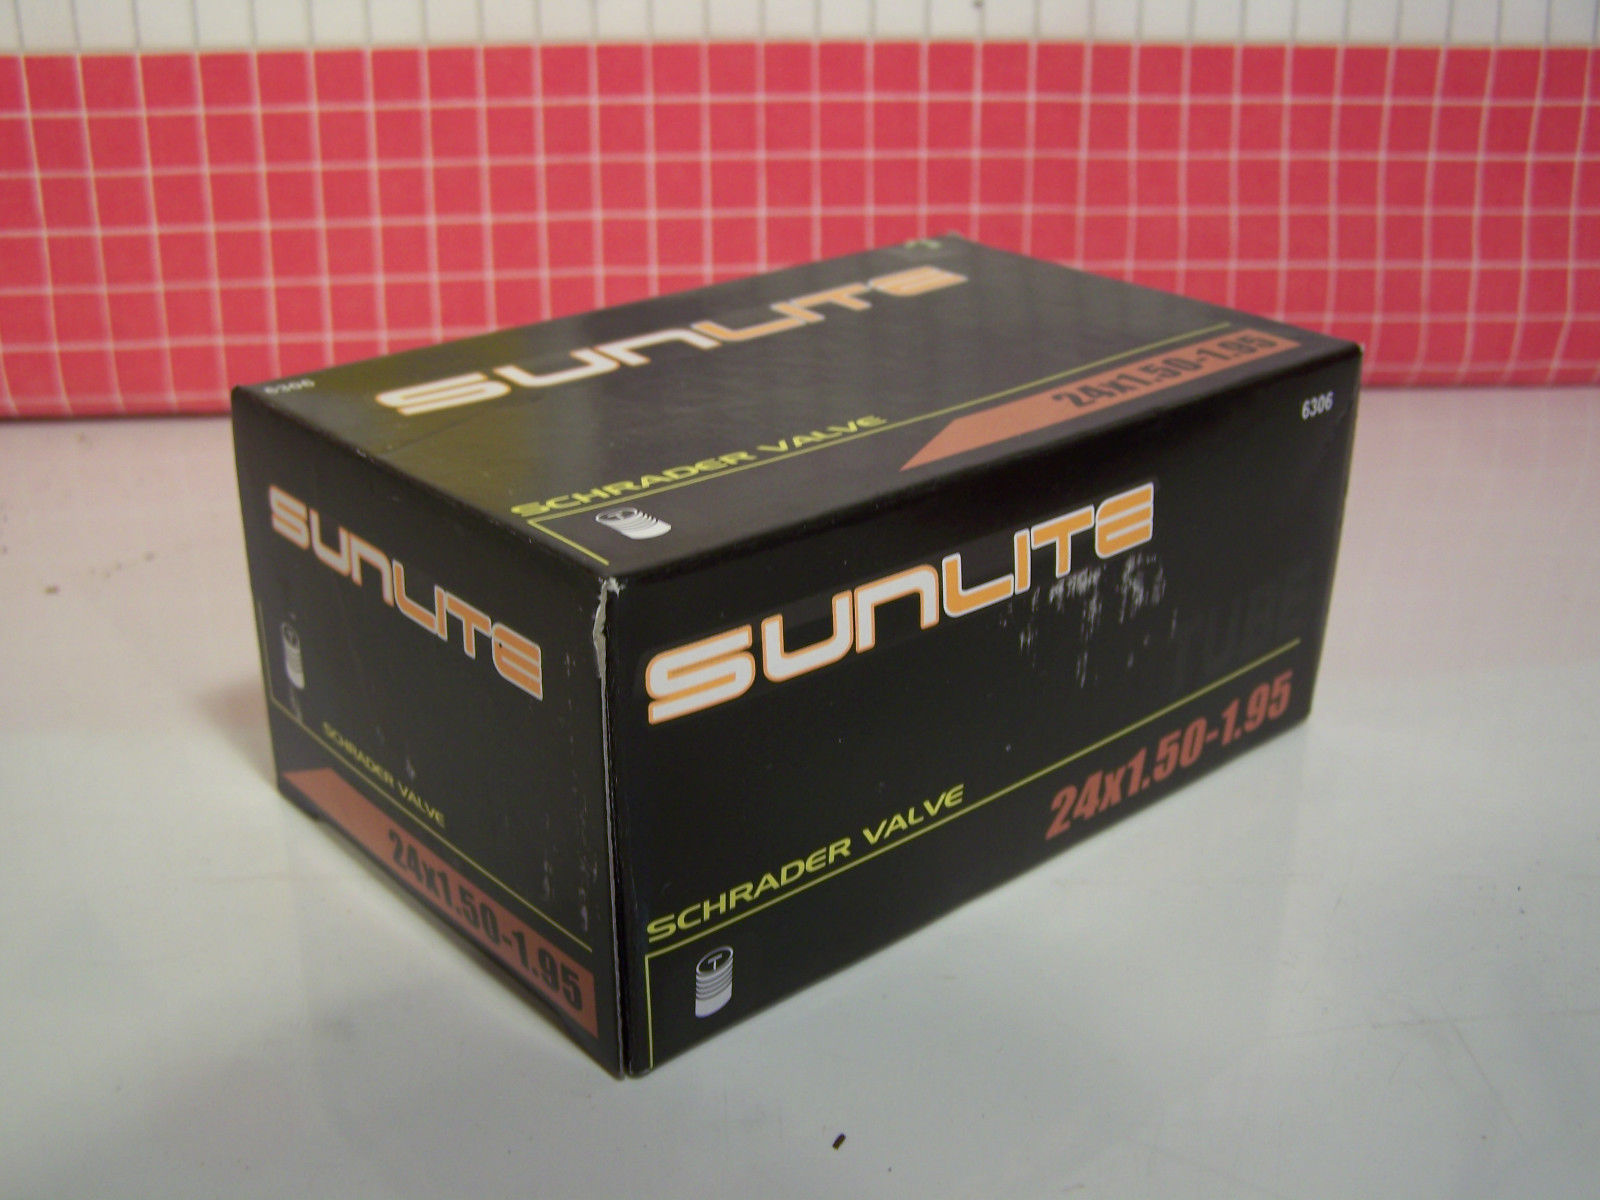 Sunlite Bicycle Inner Tube - 24x1.50-1.95 Schrader Valve - Kids ATB Bike